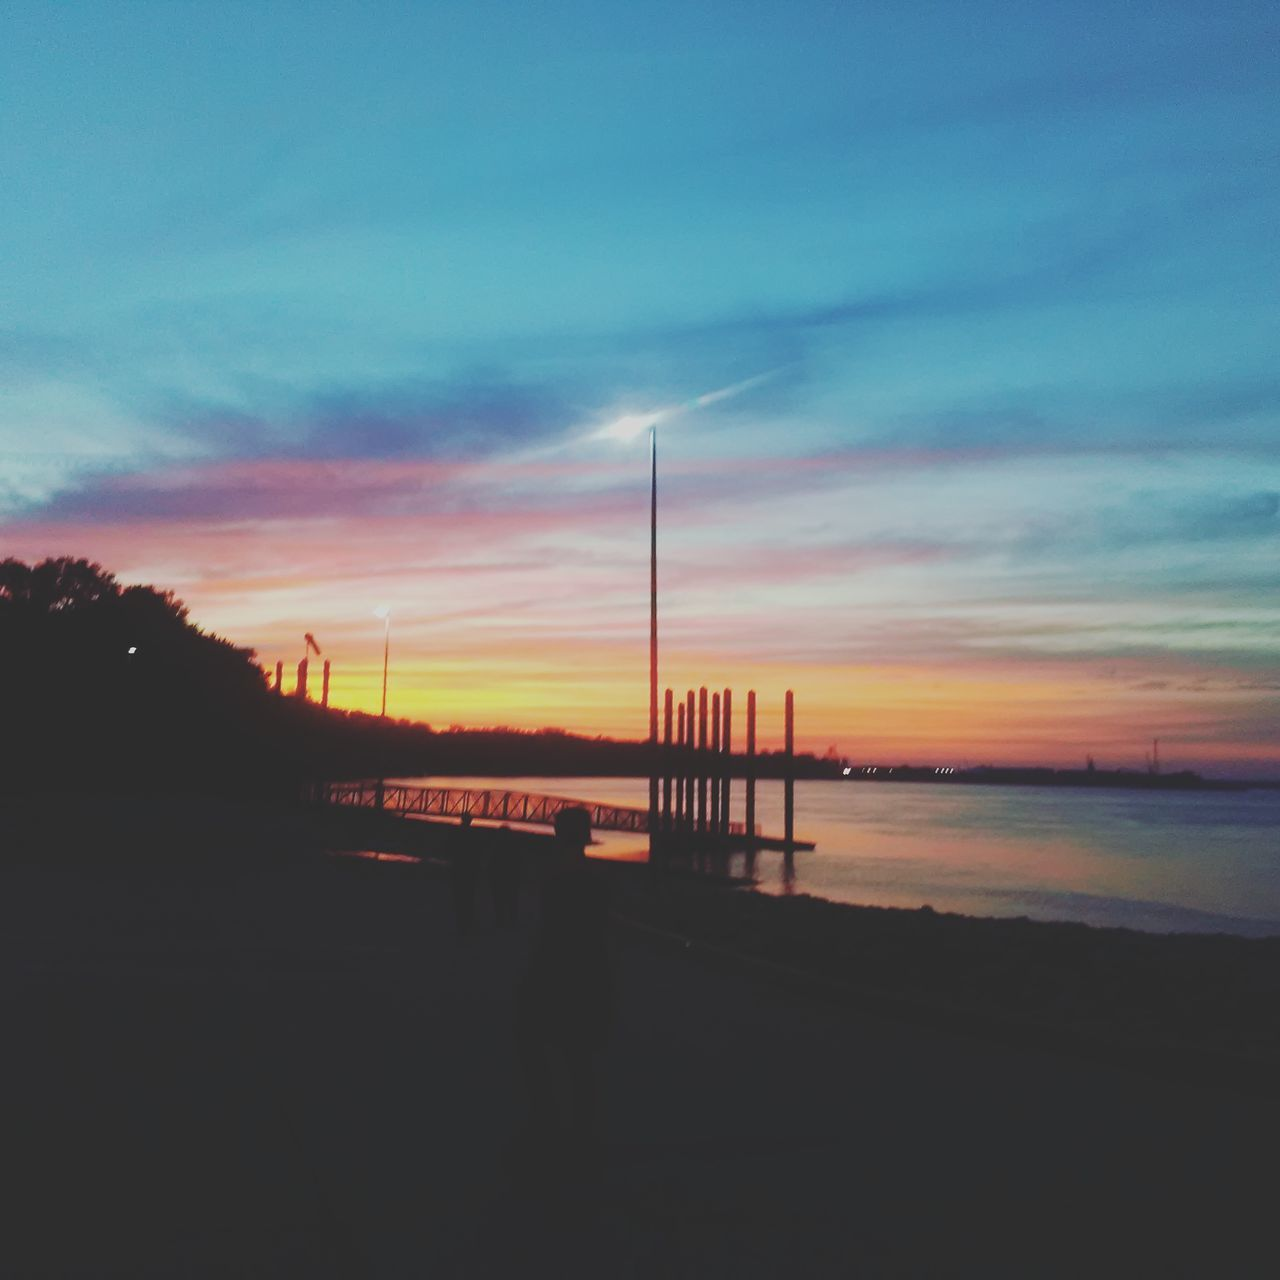 sunset, sky, sea, water, silhouette, nature, beach, scenics, cloud - sky, tranquil scene, tranquility, beauty in nature, outdoors, no people, horizon over water, day